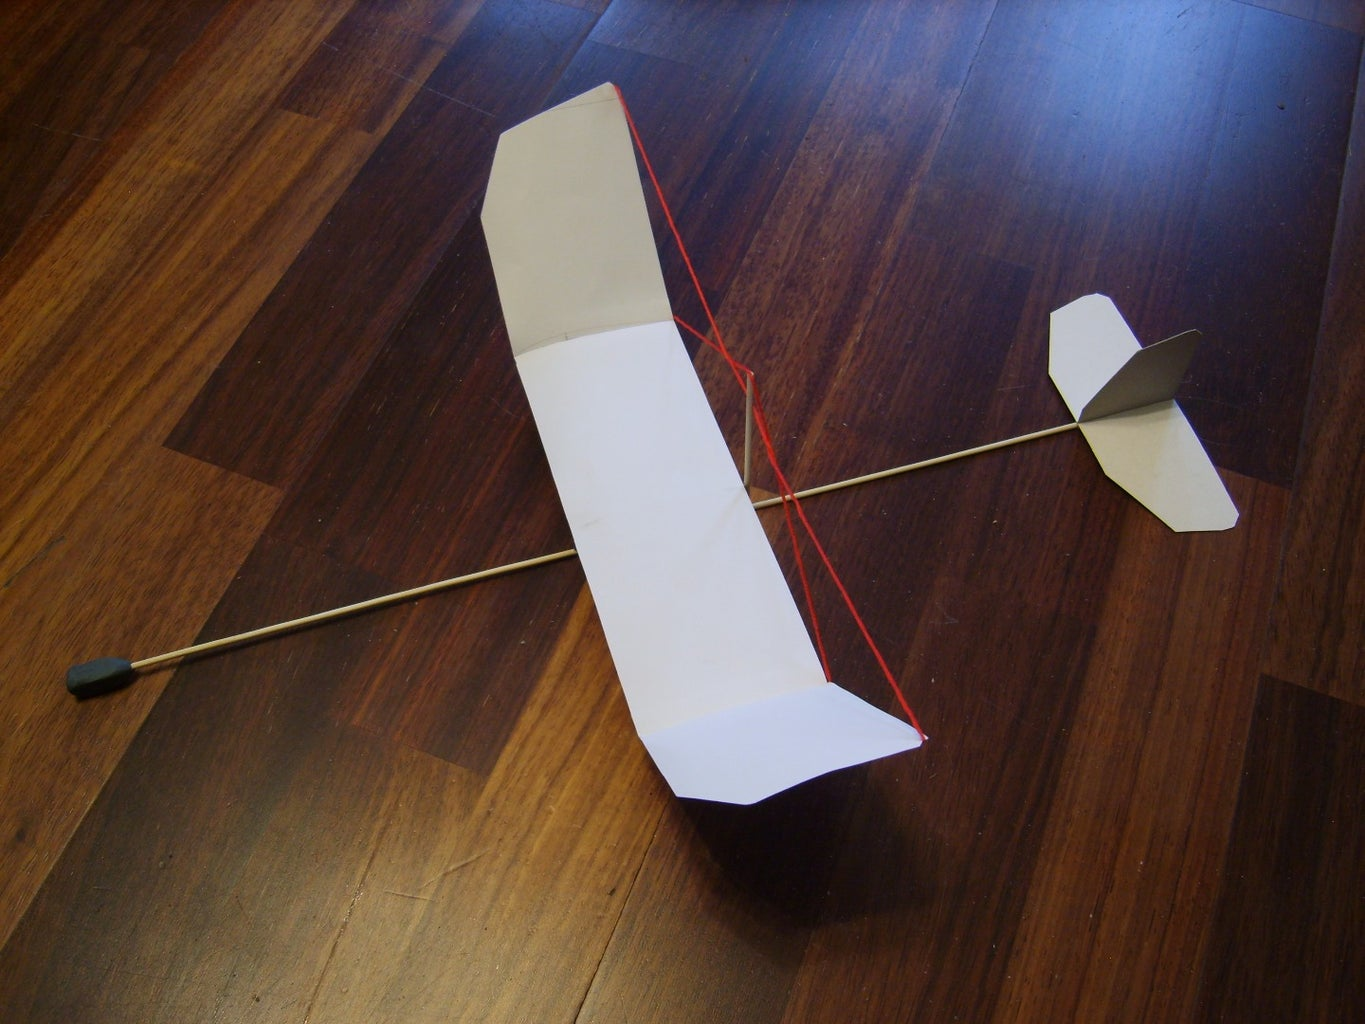 How to Make Simple Plane